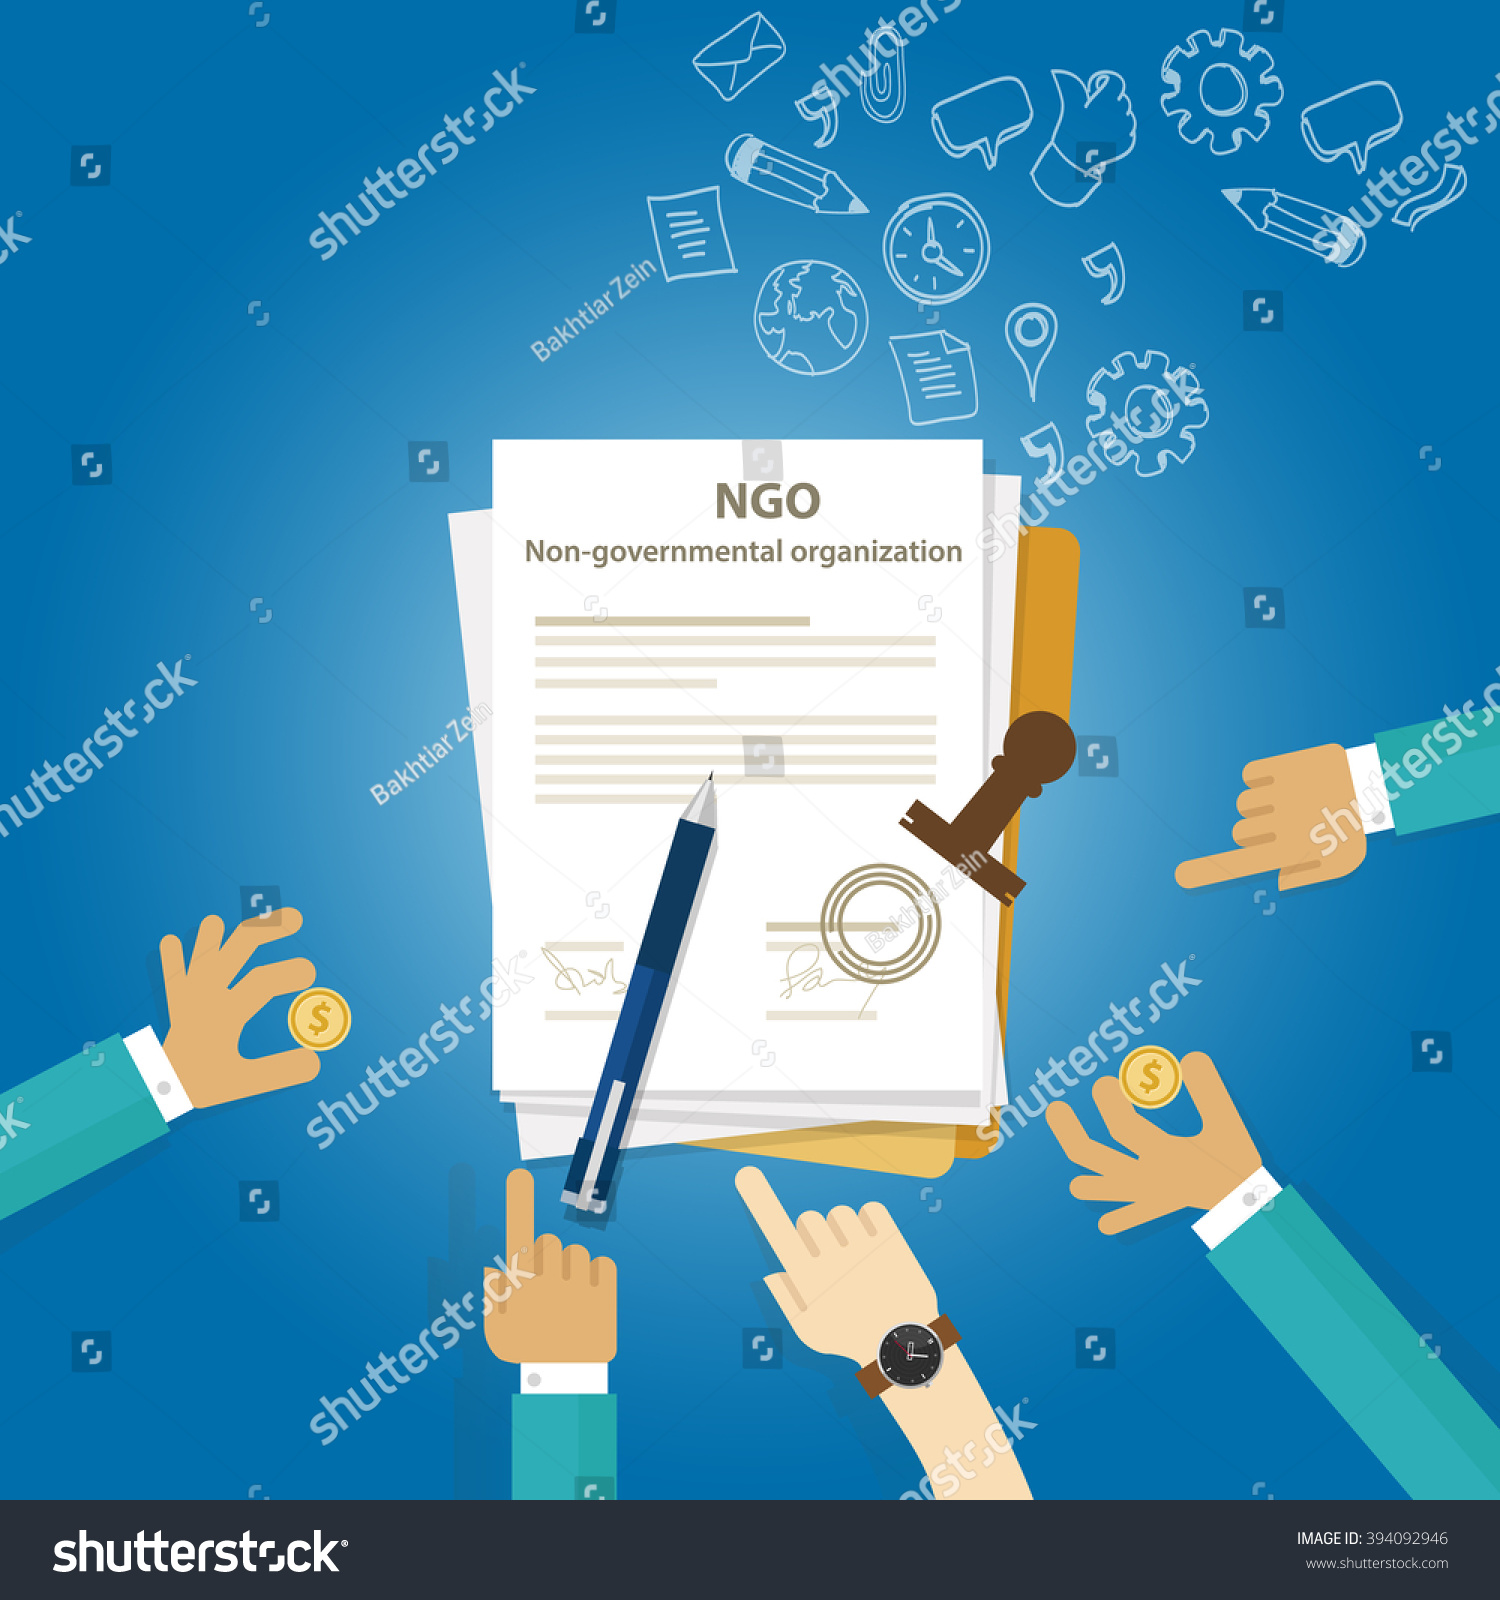 ngo non government organization types business stock vector ngo non government organization types of business corporation organization entity